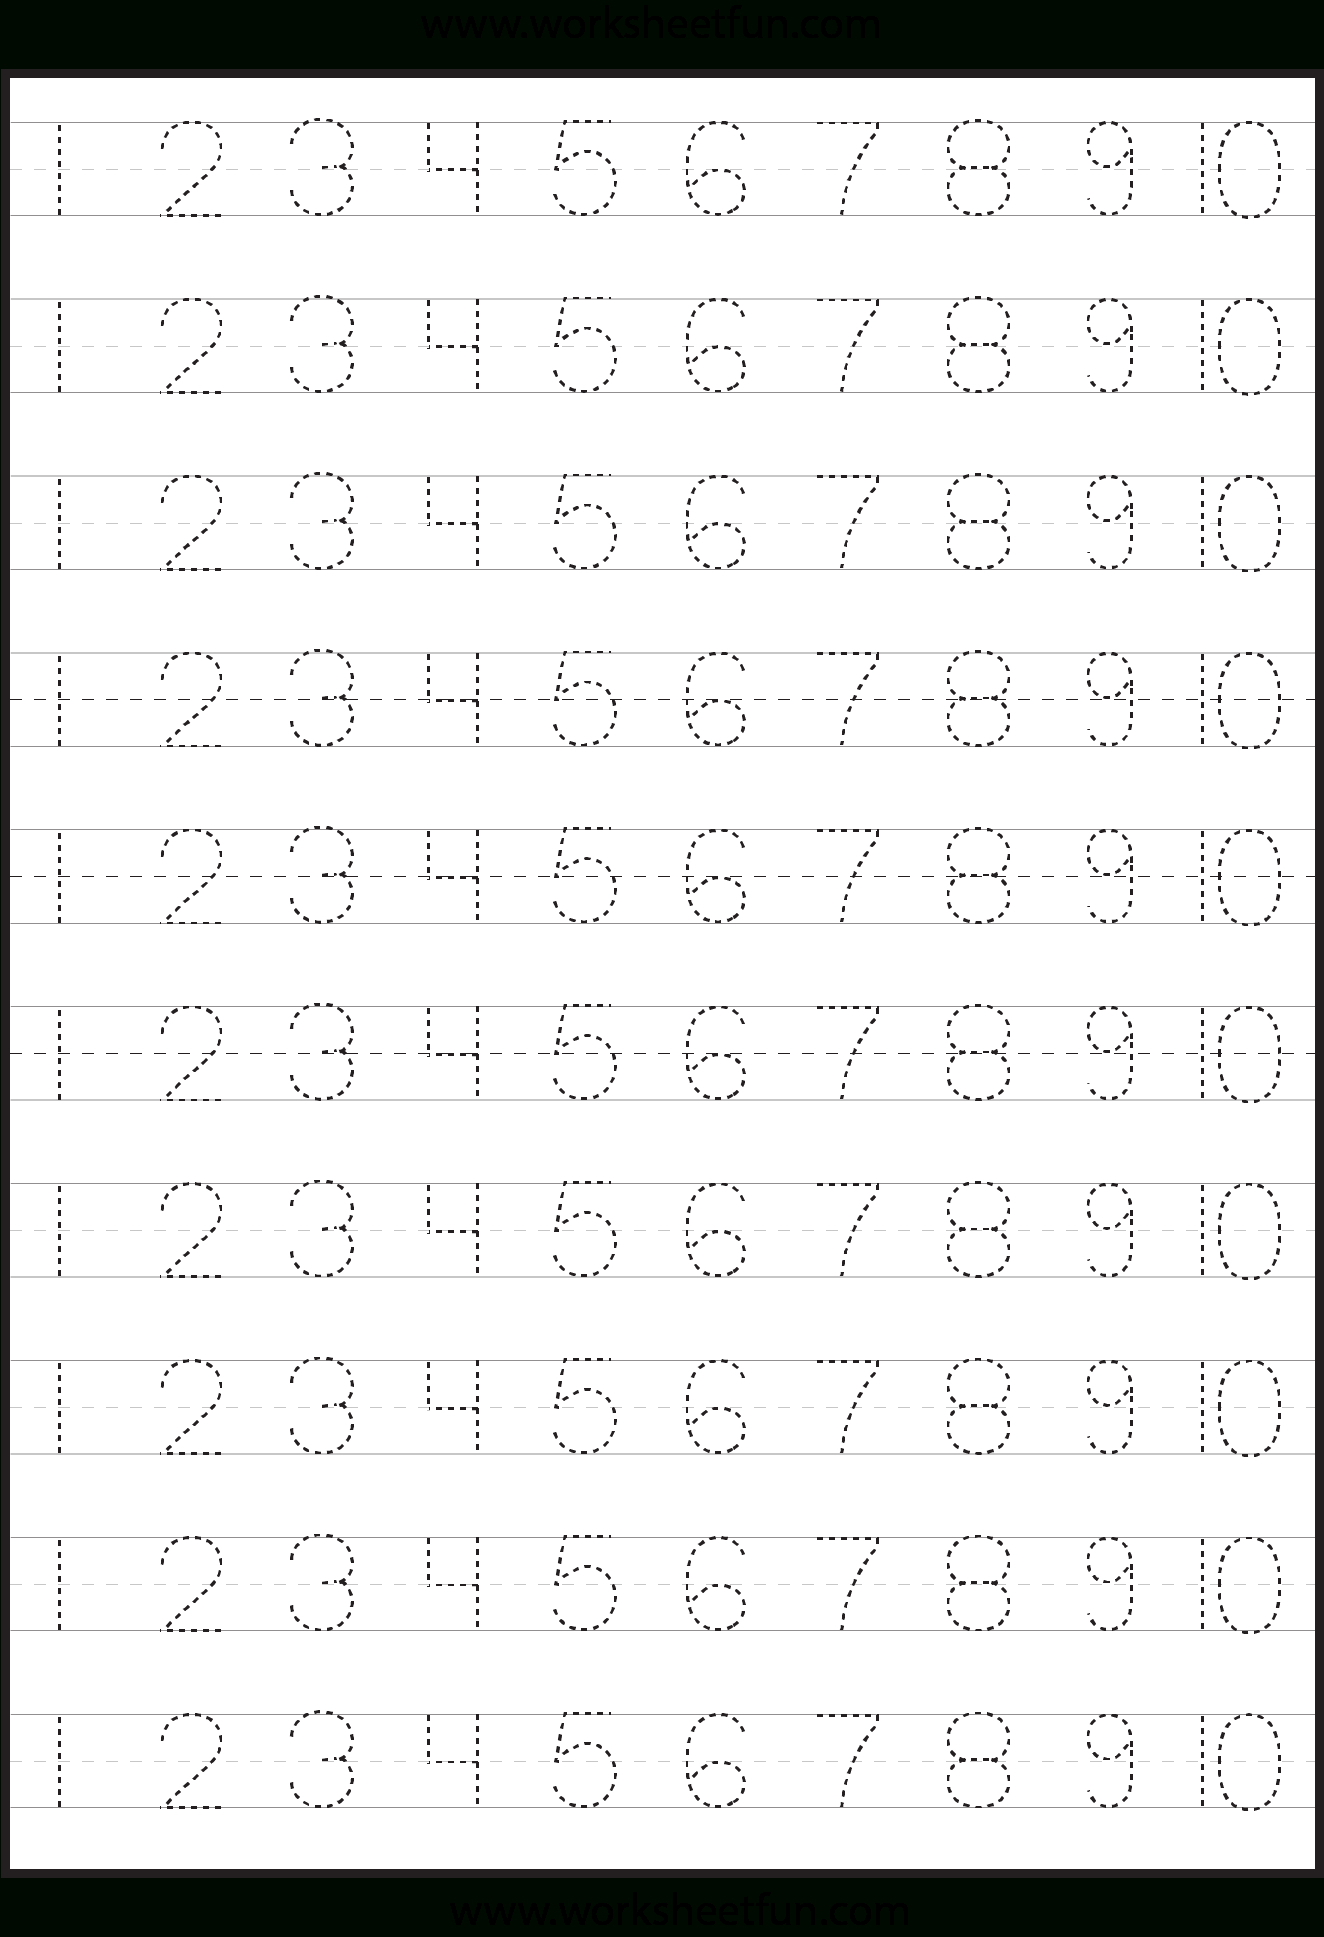 Number Tracing | Tracing Worksheets Preschool, Learning with regard to Alphabet Tracing Worksheets For 5 Year Olds